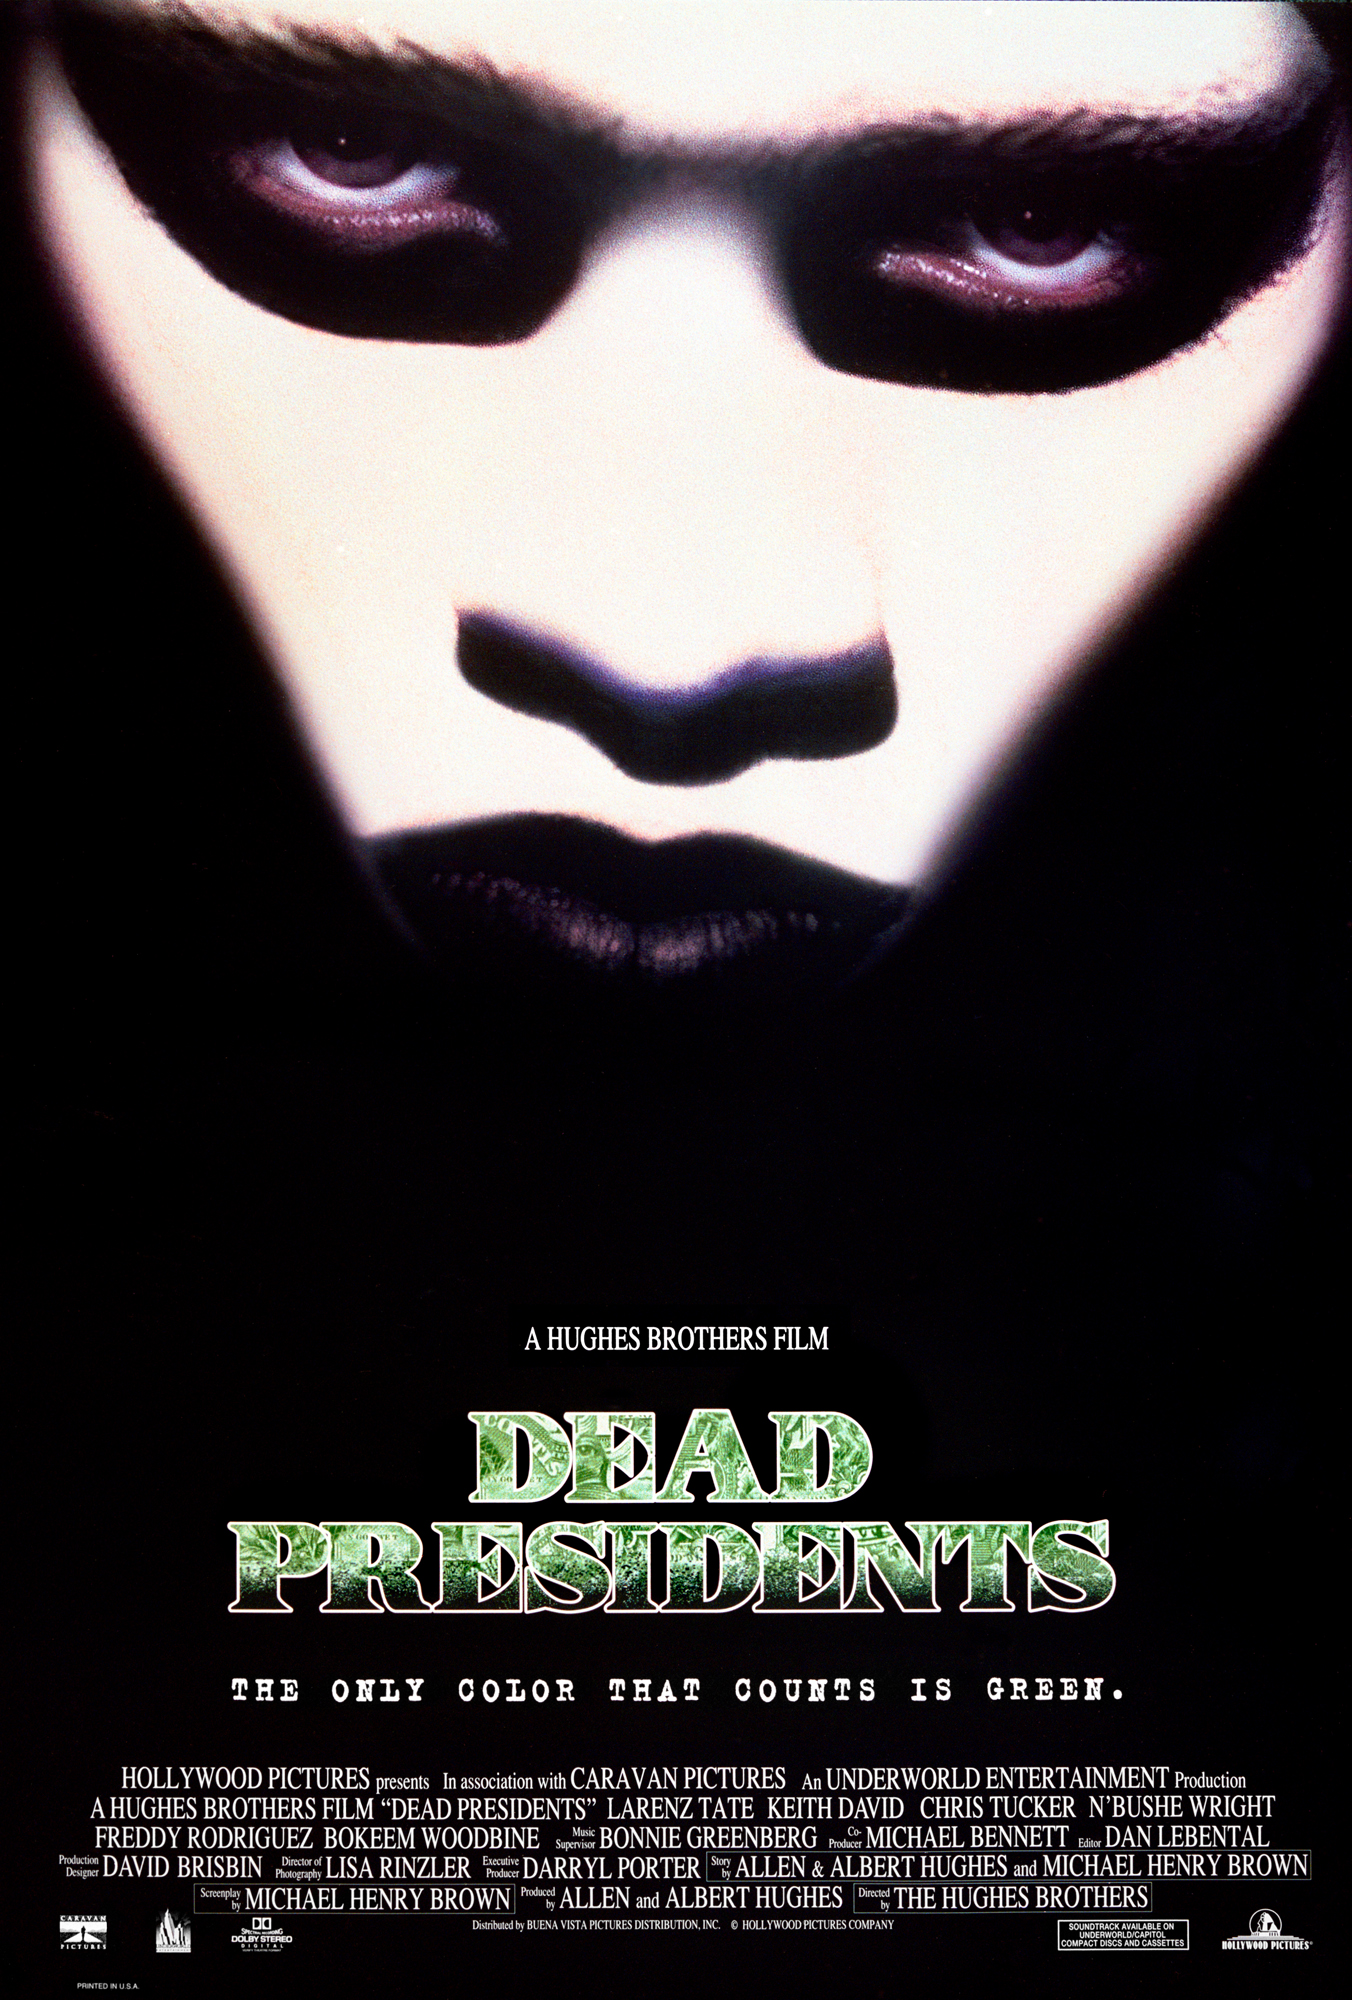 The Poster For The 1995 Film Dead Presidents